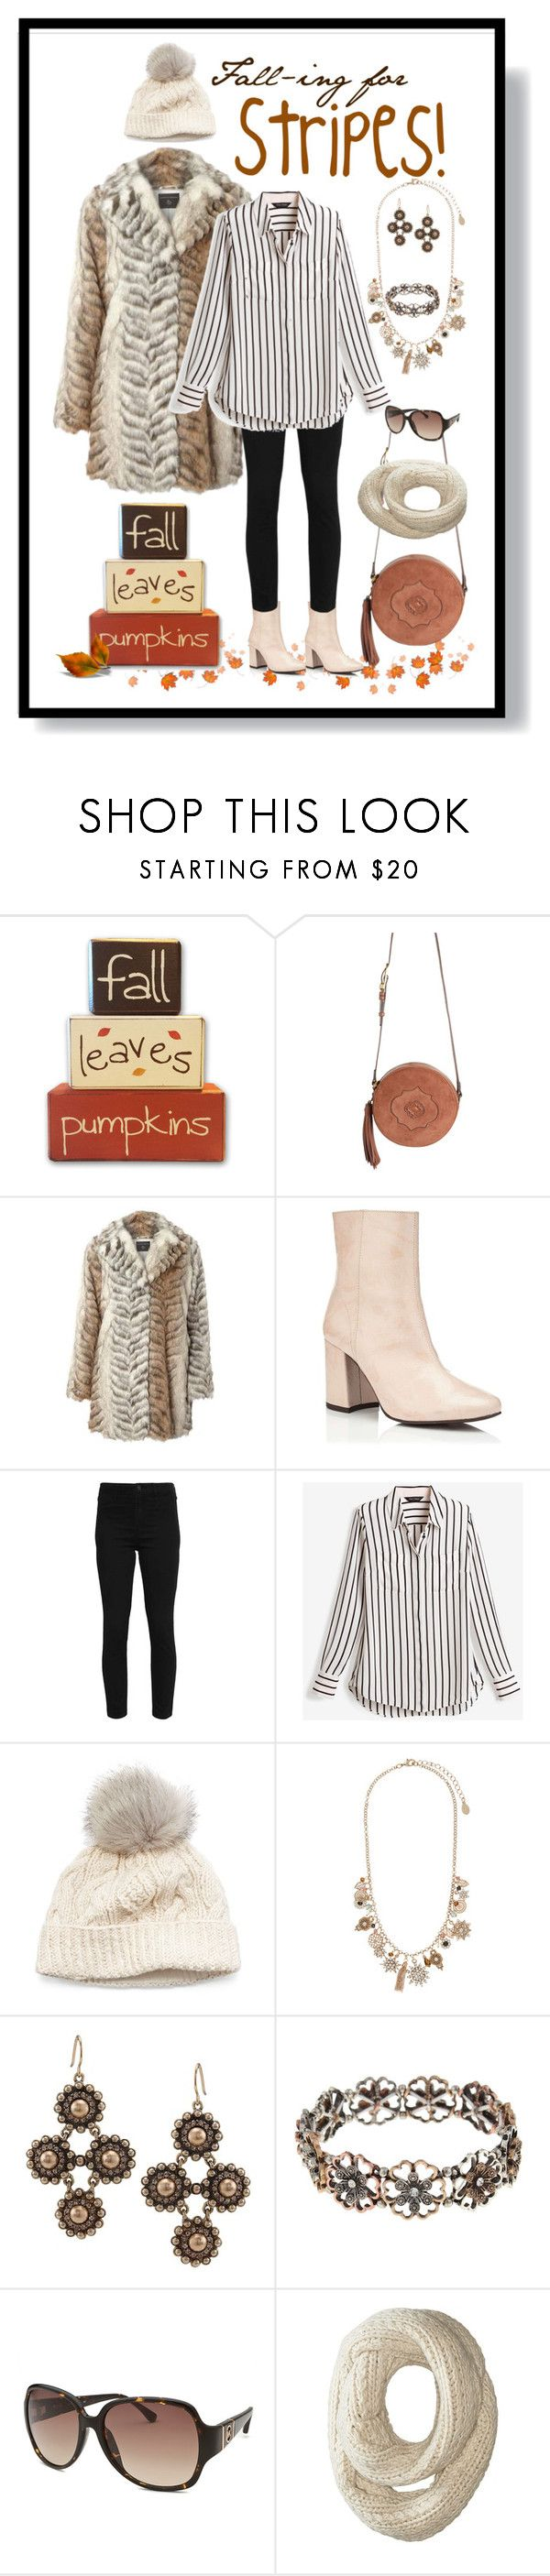 """""""Fall-ing for Stripes!!"""" by ms-ironickel ❤ liked on Polyvore featuring Oryany, Miss Selfridge, Hollister Co., White House Black Market, SIJJL, Accessorize, Carolee, Decree, Michael Kors and Roxy"""